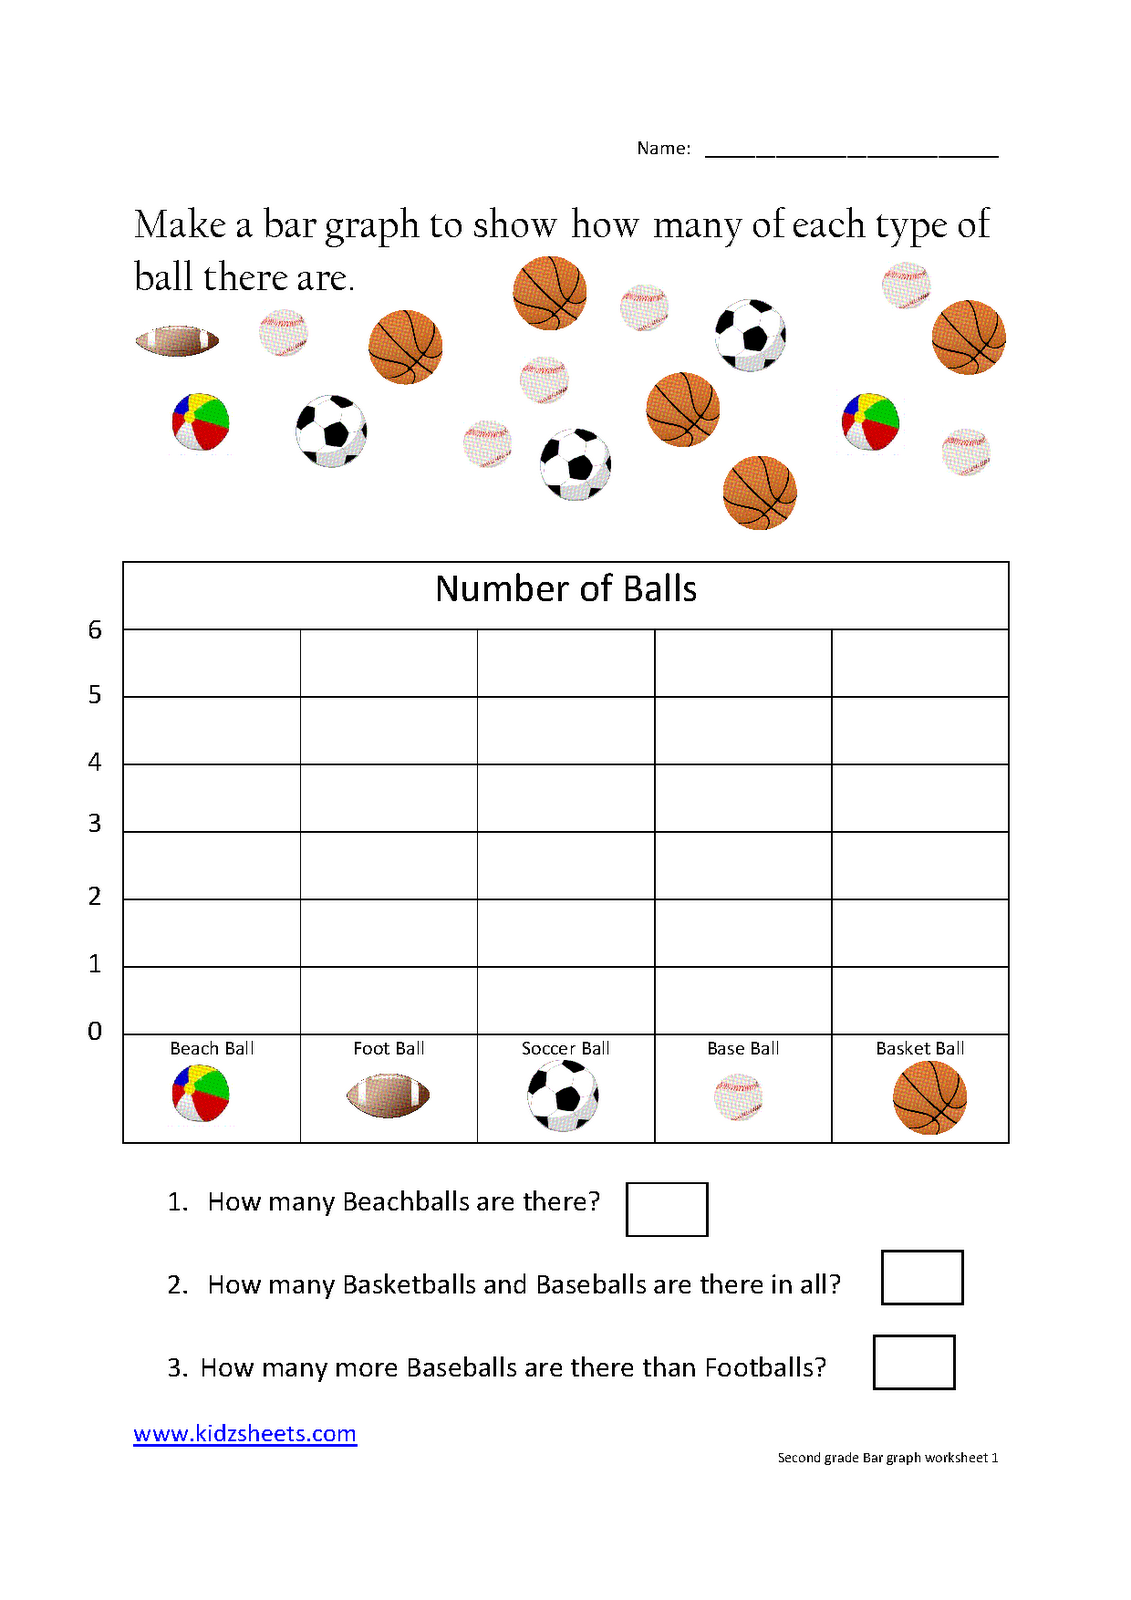 Kidz Worksheets Second Grade Bar Graph Worksheet1 – Printable 2nd Grade Worksheets